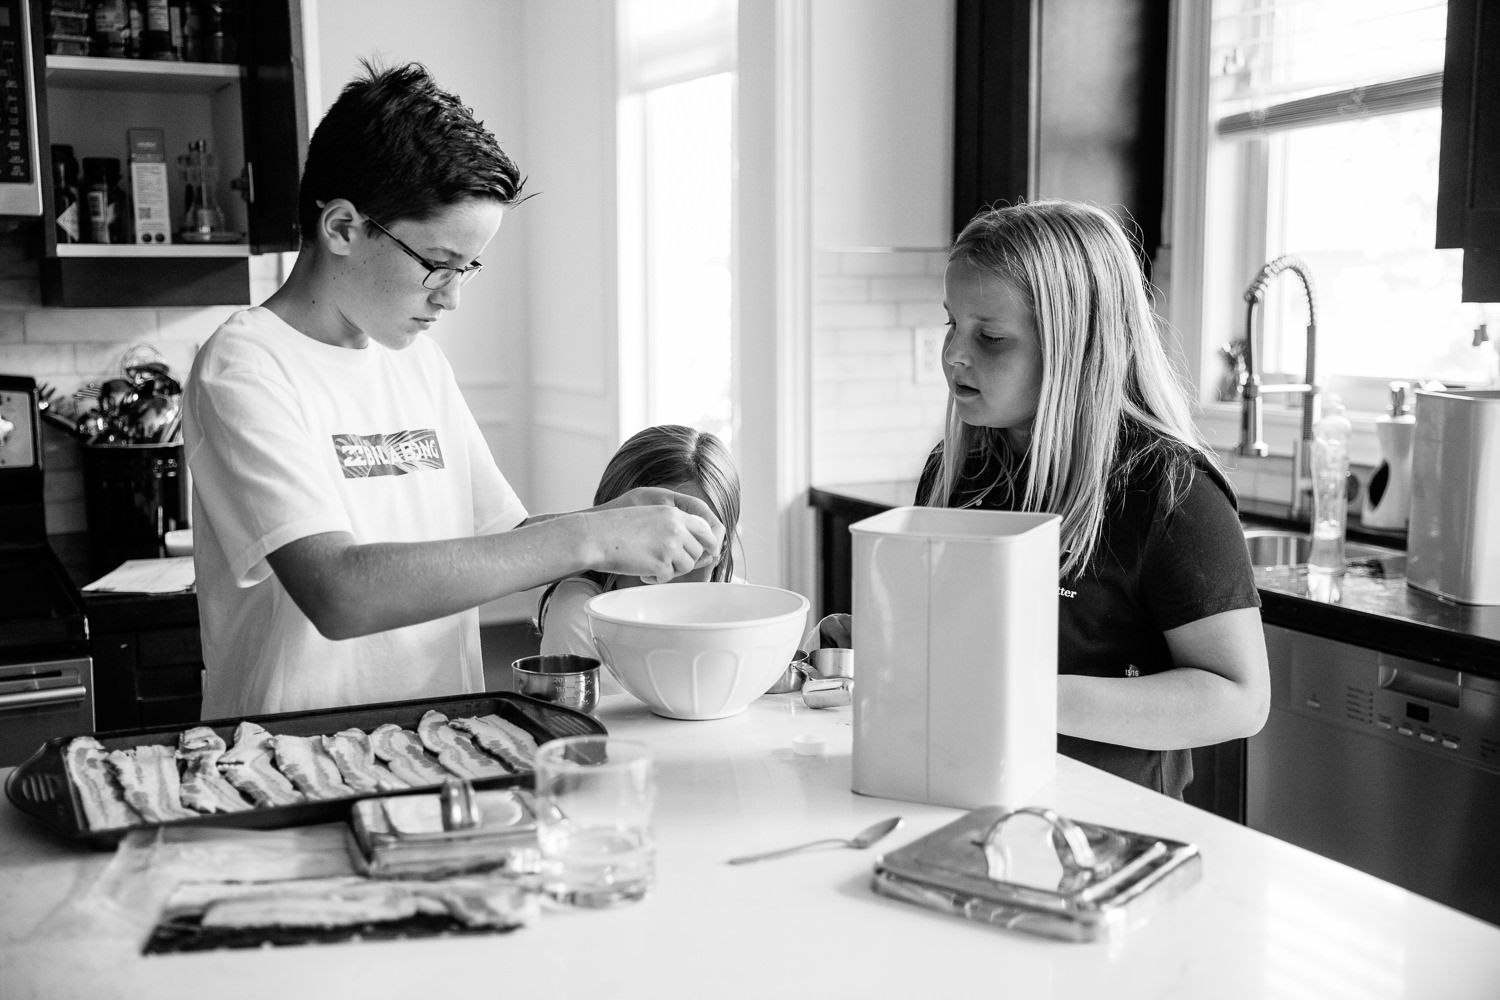 3 children standing at kitchen island mixing pancake batter for family brunch, 8 and 10 year old girls, 13 year old boy cracking eggs -Newmarket Lifestyle Photography